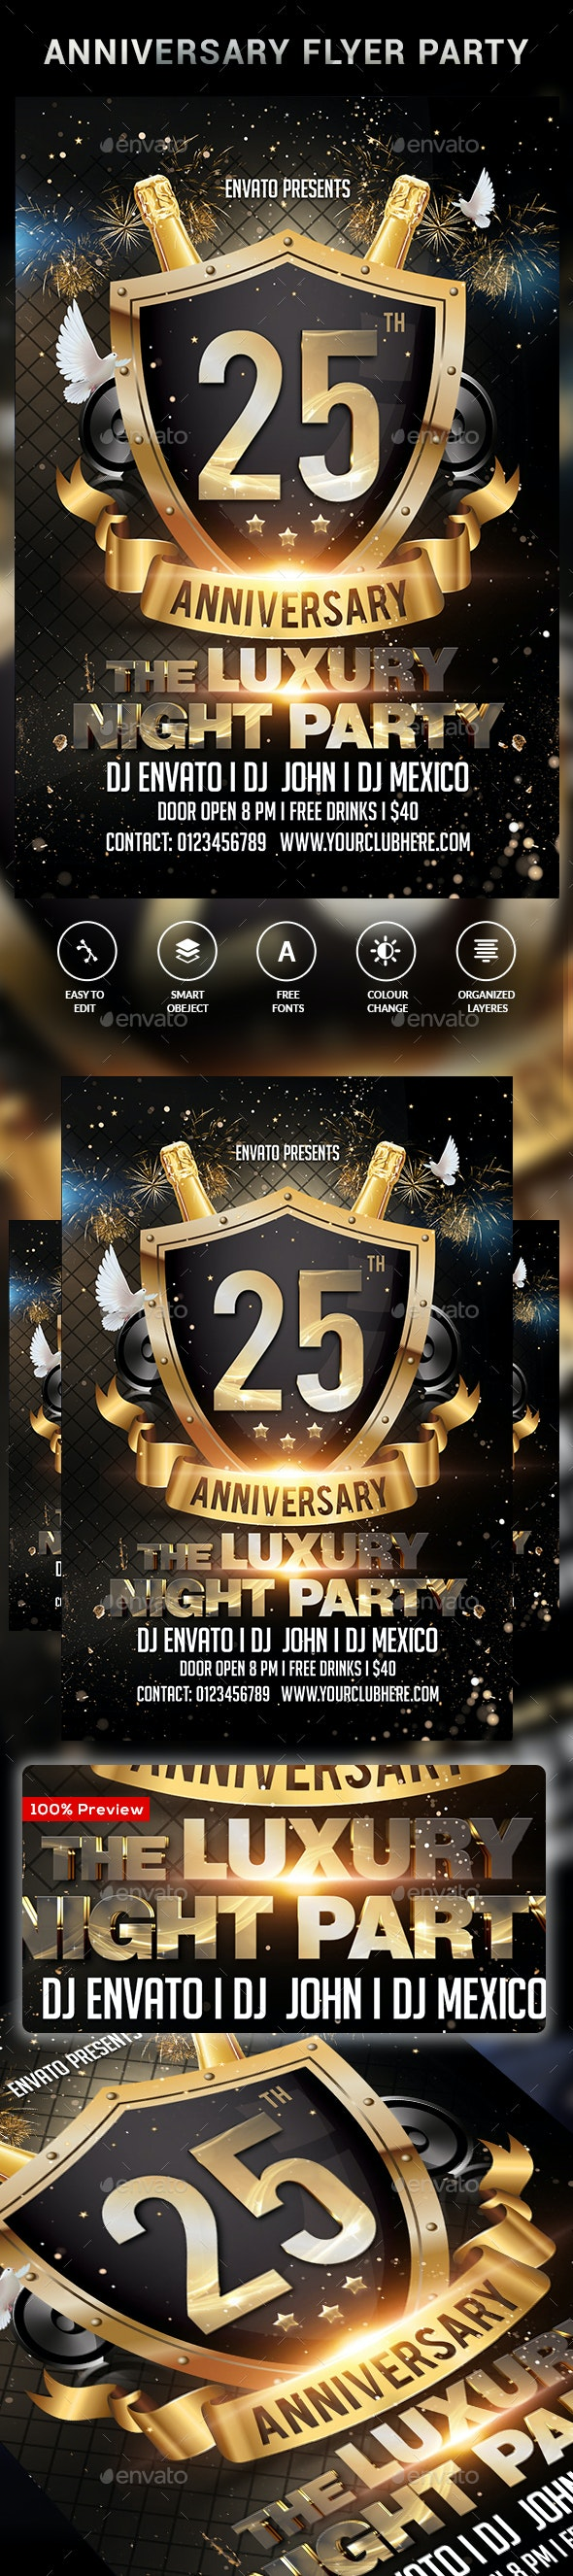 Anniversary Party Flyer - Clubs & Parties Events